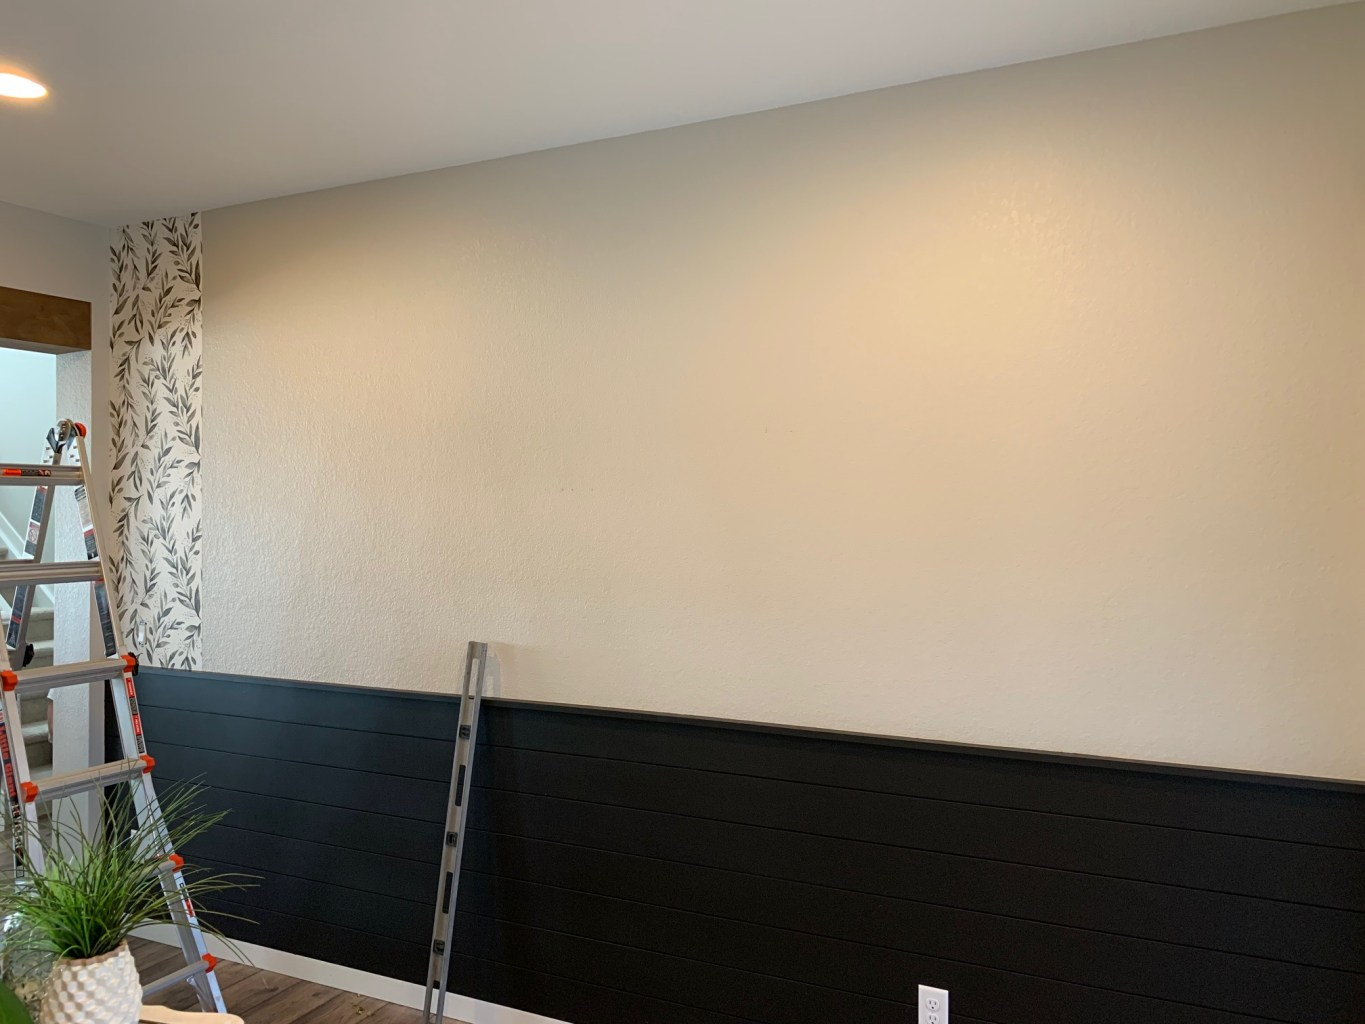 Entry wall with 1 strip of wallpaper and half the wall is black shiplap